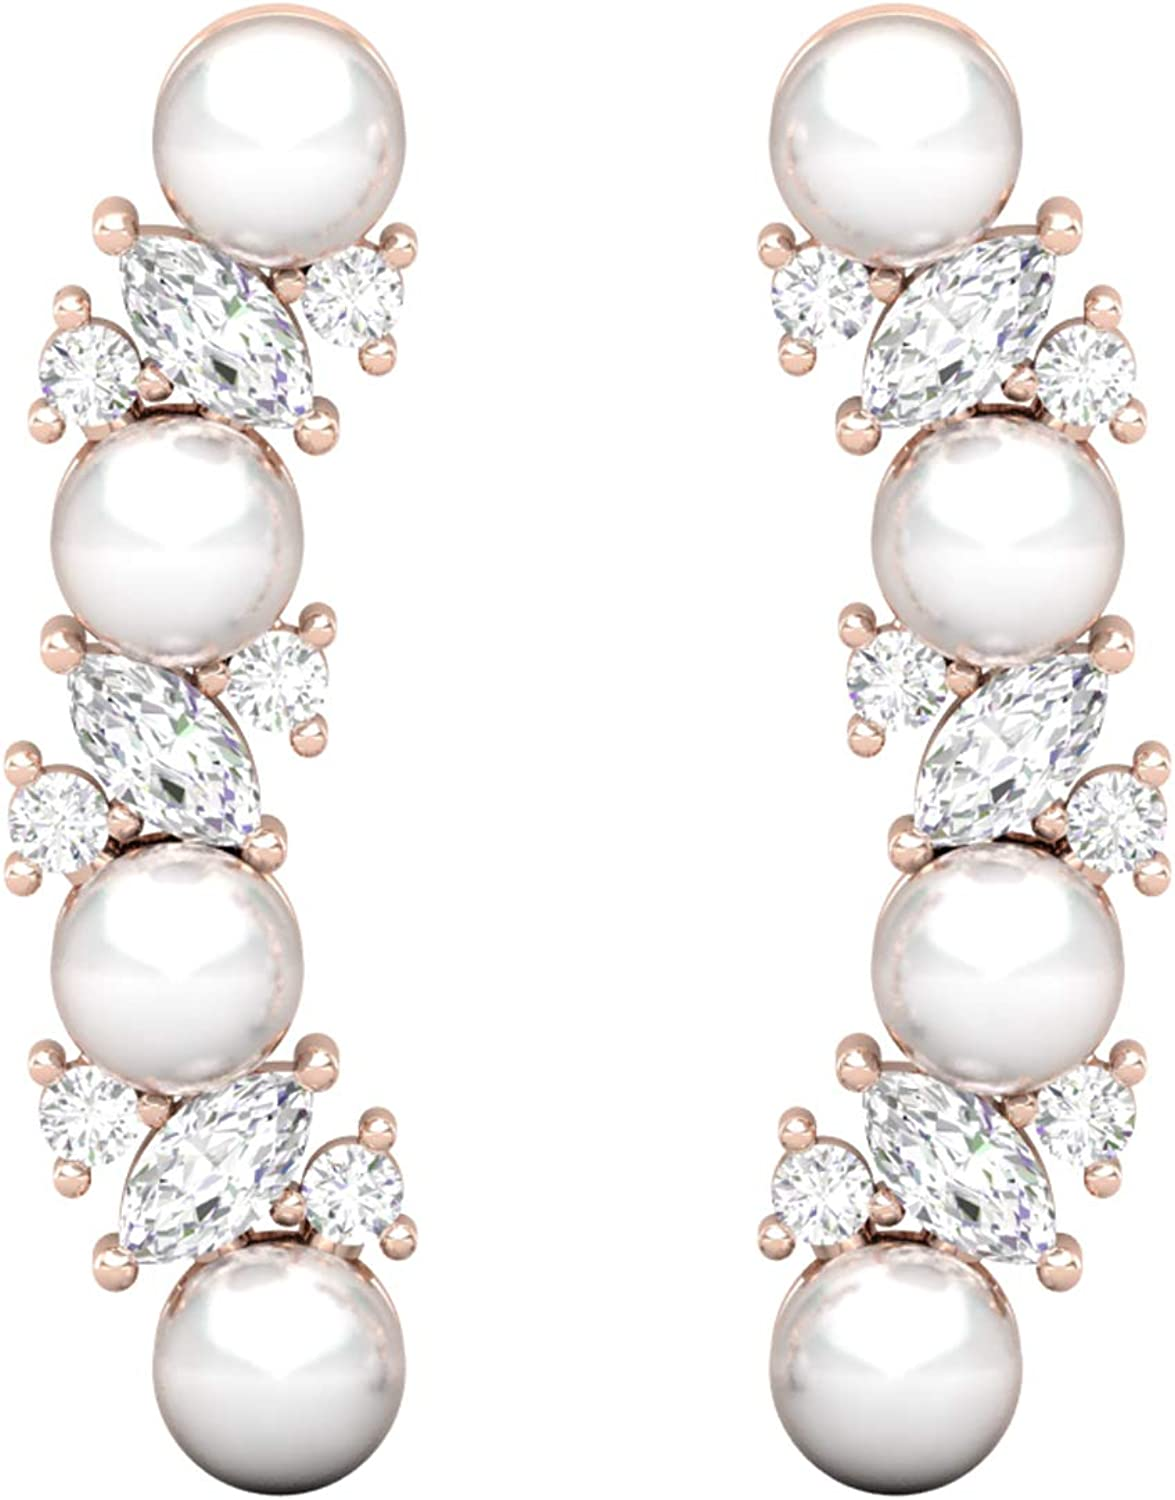 mart Pearl Helix Earring sold out Tragus Piercing Wo For Stud Earrings